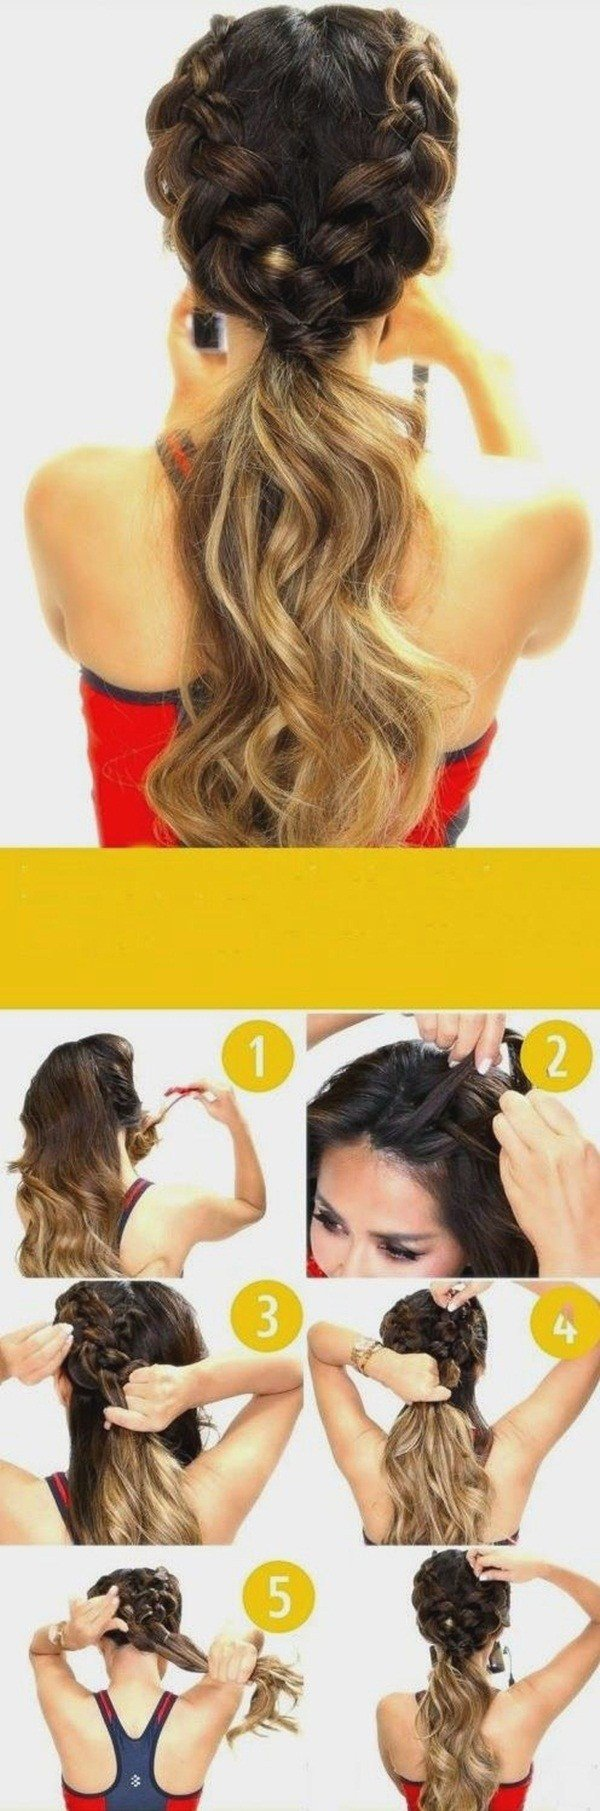 The Best 40 Easy Hairstyles For Schools To Try In 2016 Pictures